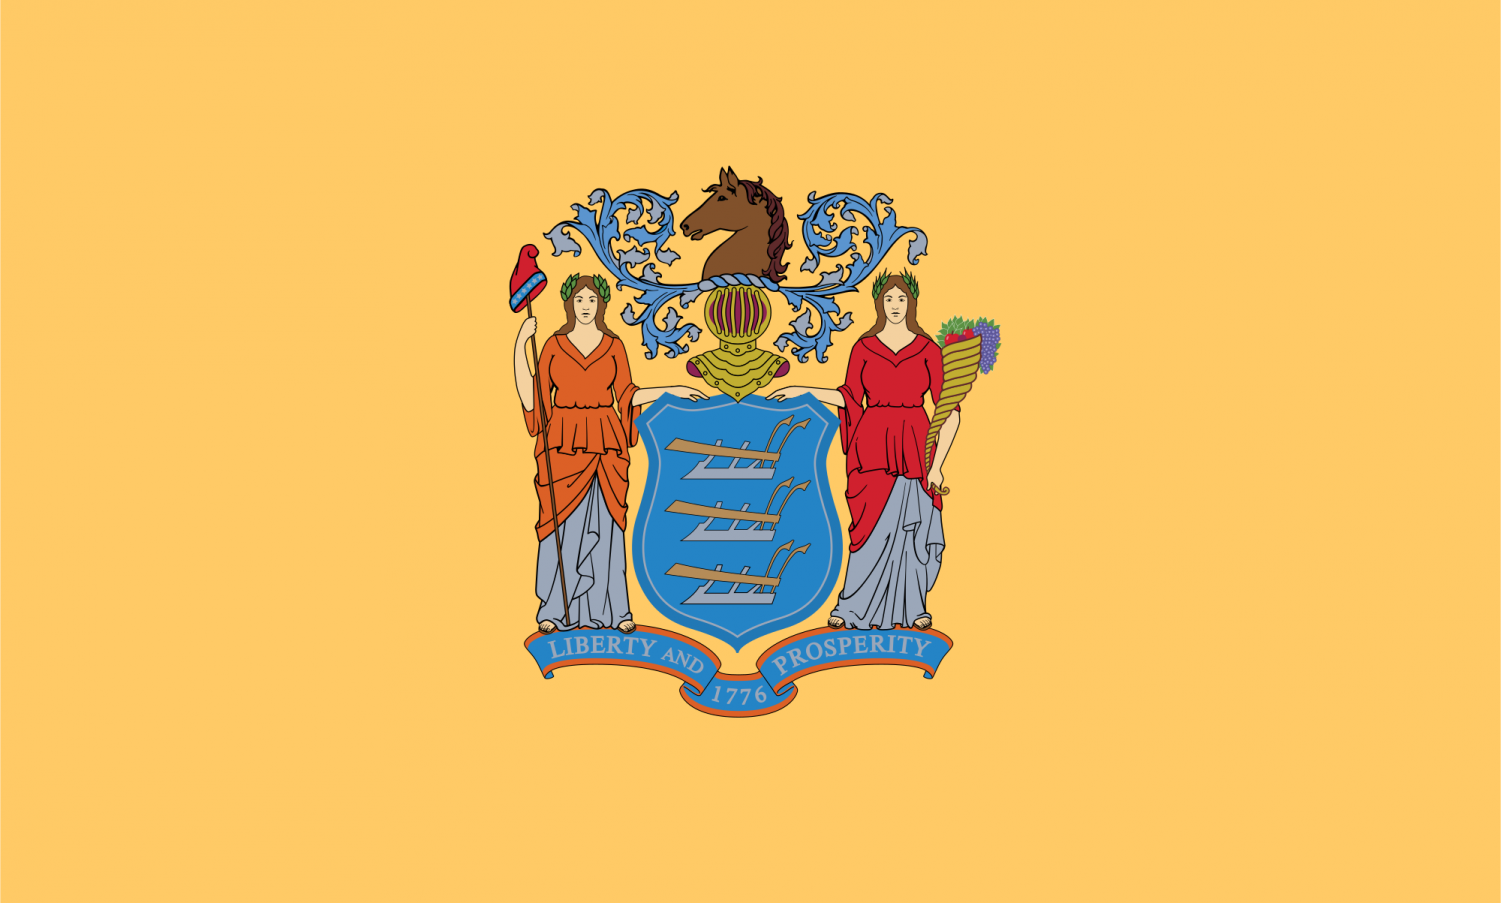 In 2019, New Jersey has made some very critical improvements to help the state of New Jersey